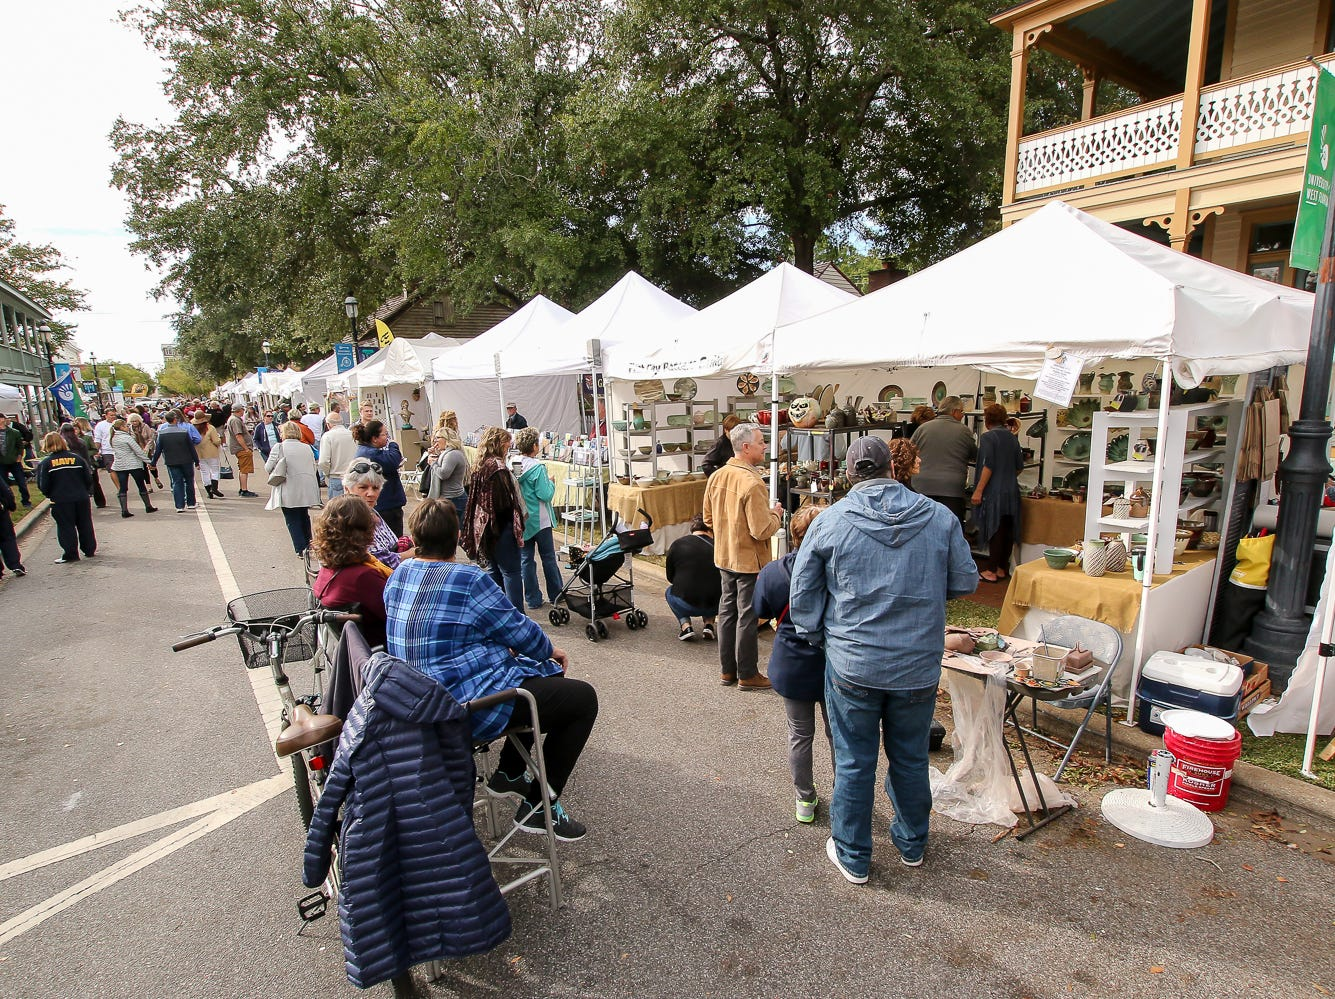 The Great Gulfcoast Arts Festival gets underway on Friday, November 2, 2018. The free event, featuring over 200 artists and vendors in and around Seville Square in downtown Pensacola, continues on Saturday (9 a.m. - 5 p.m.) and Sunday (10 a.m. - 4 p.m.).